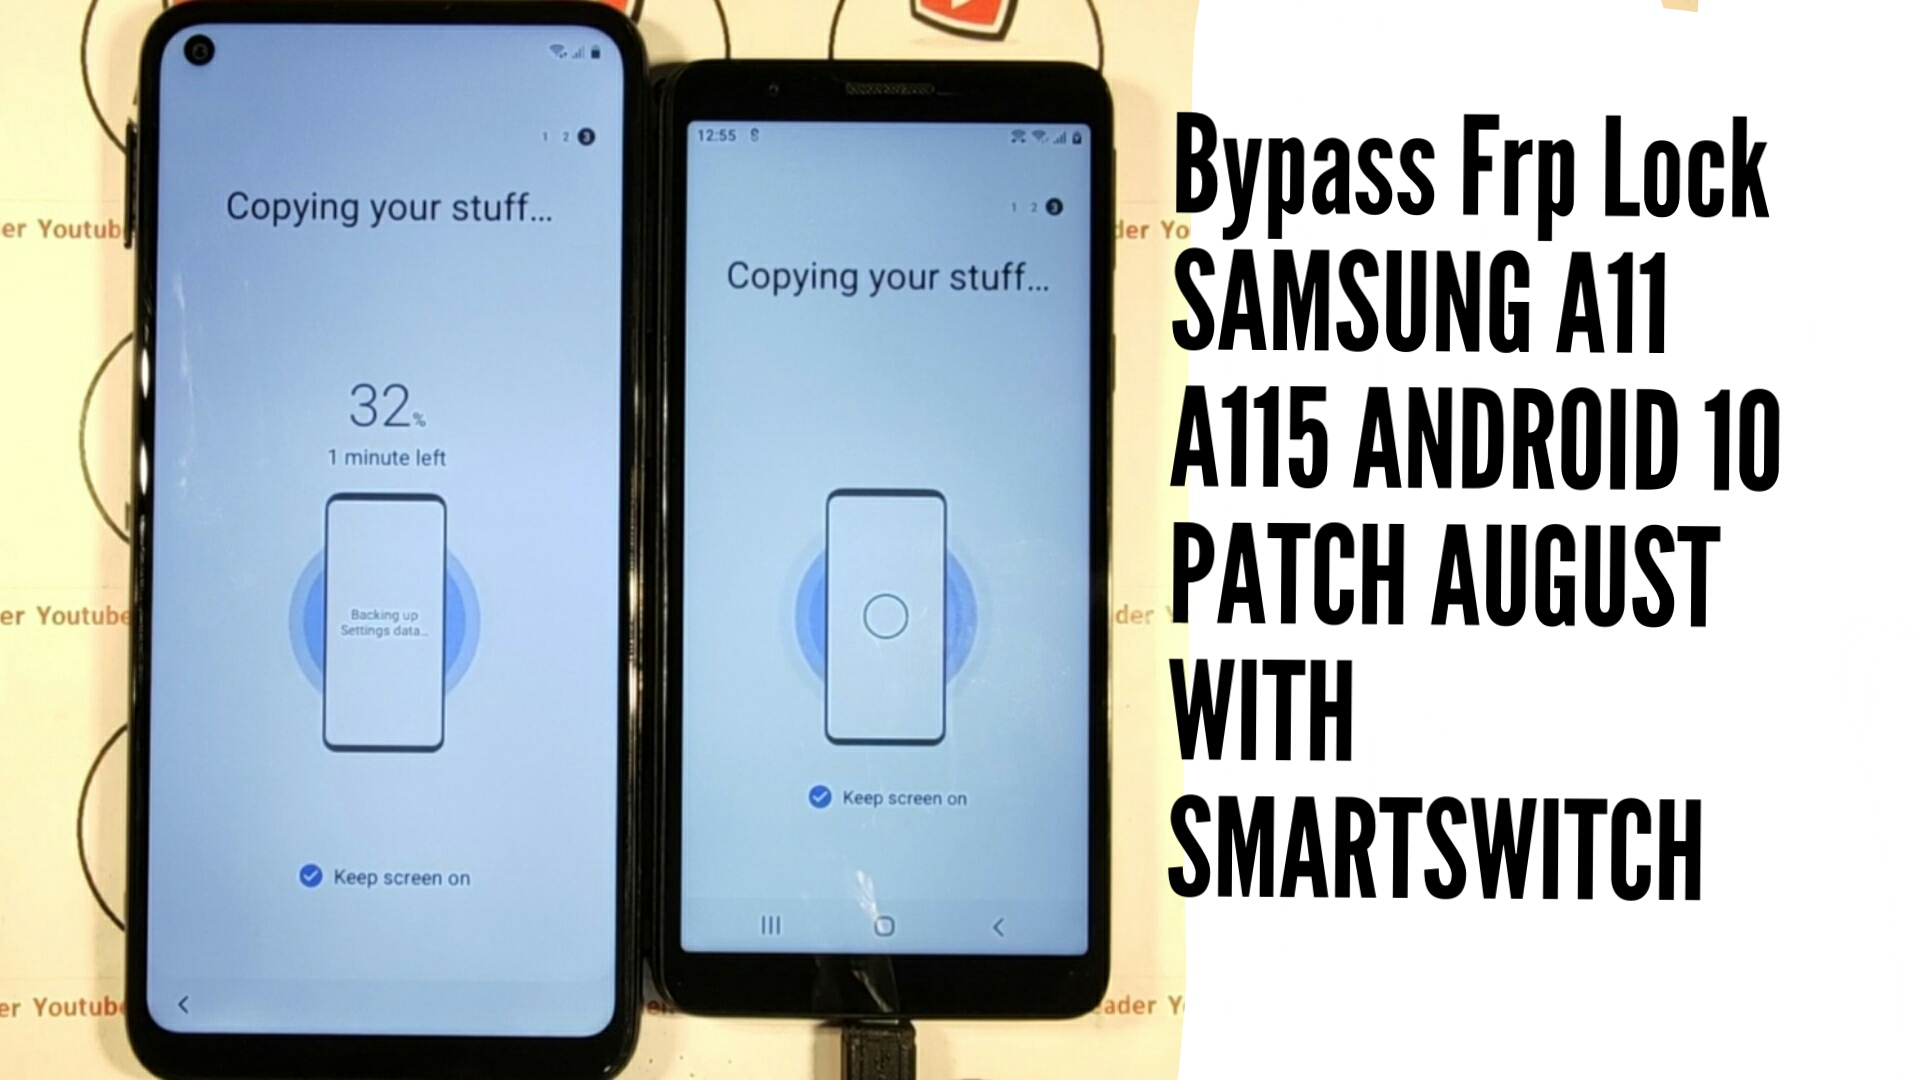 SAMSUNG A11 A115 ANDROID 10